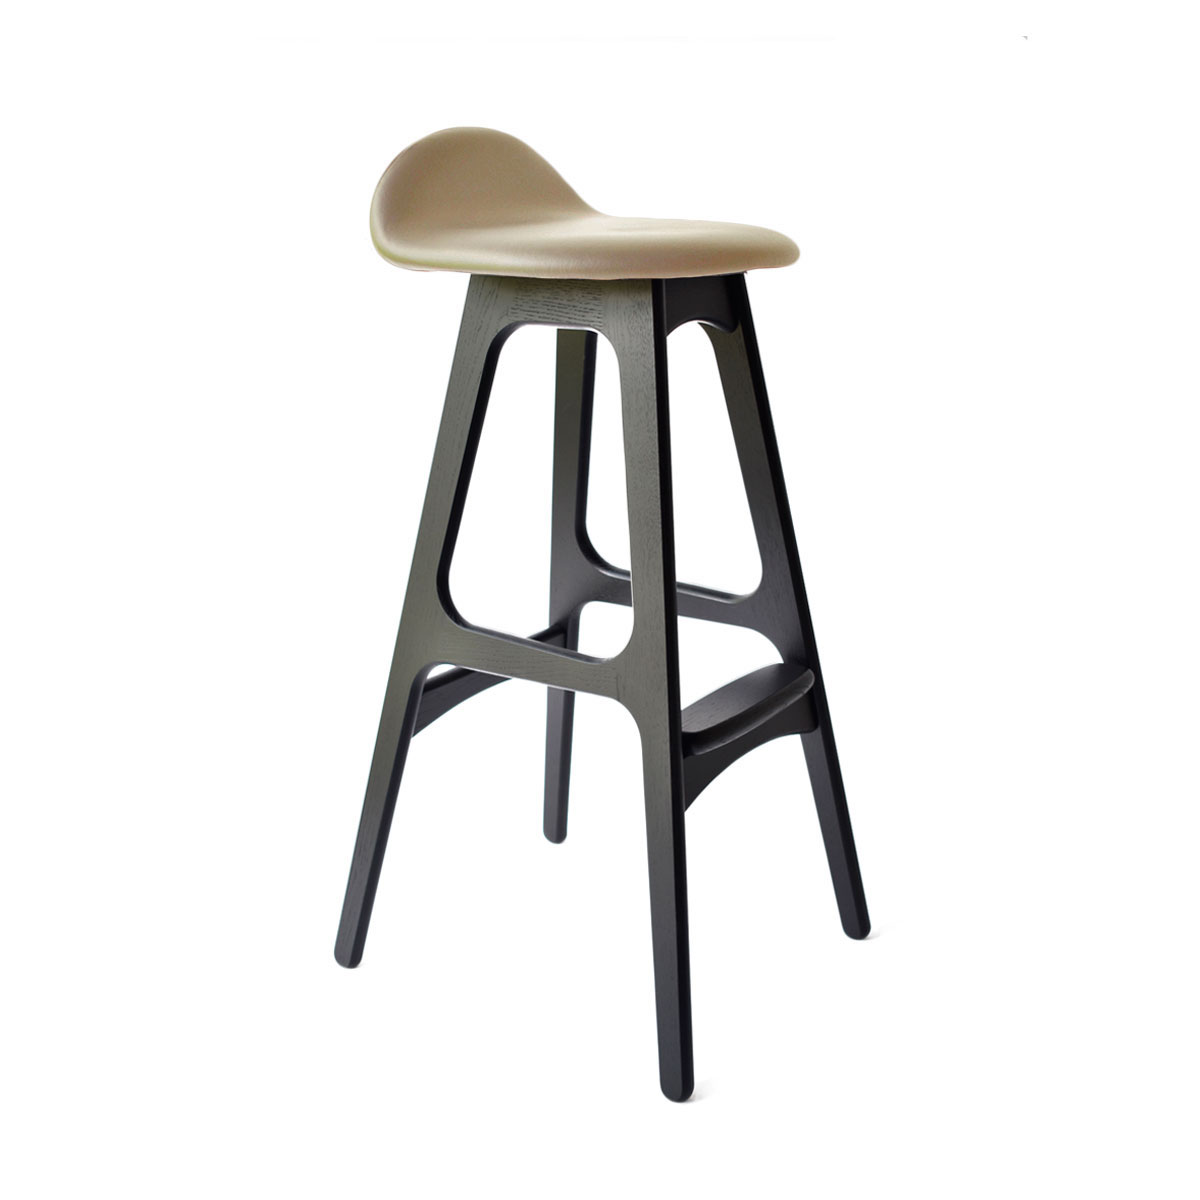 Product Image ERIK BUCH Model 61 Bar Stool BLACK OAK